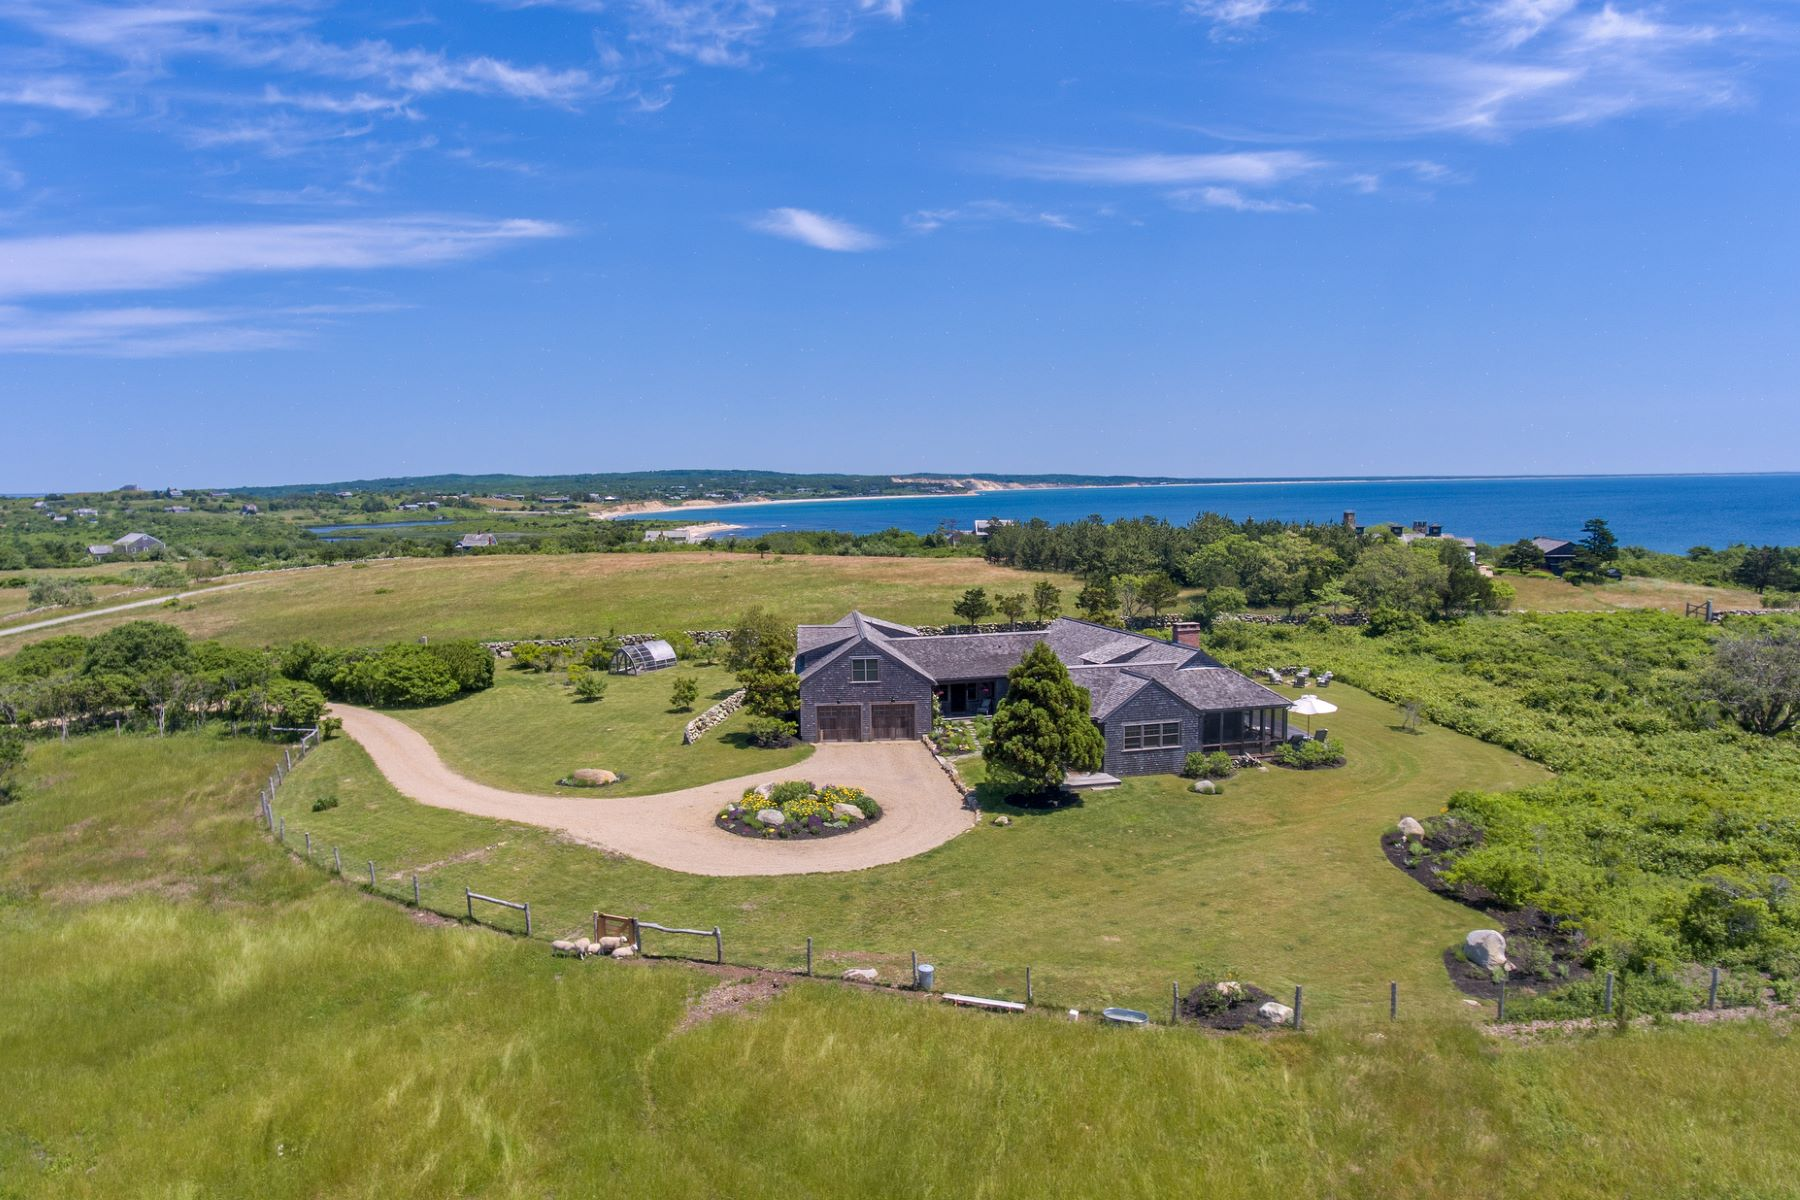 Single Family Homes for Sale at Exclusive Squibnocket Farm Waterview Estate 18 Spruce Gate Road Chilmark, Massachusetts 02535 United States